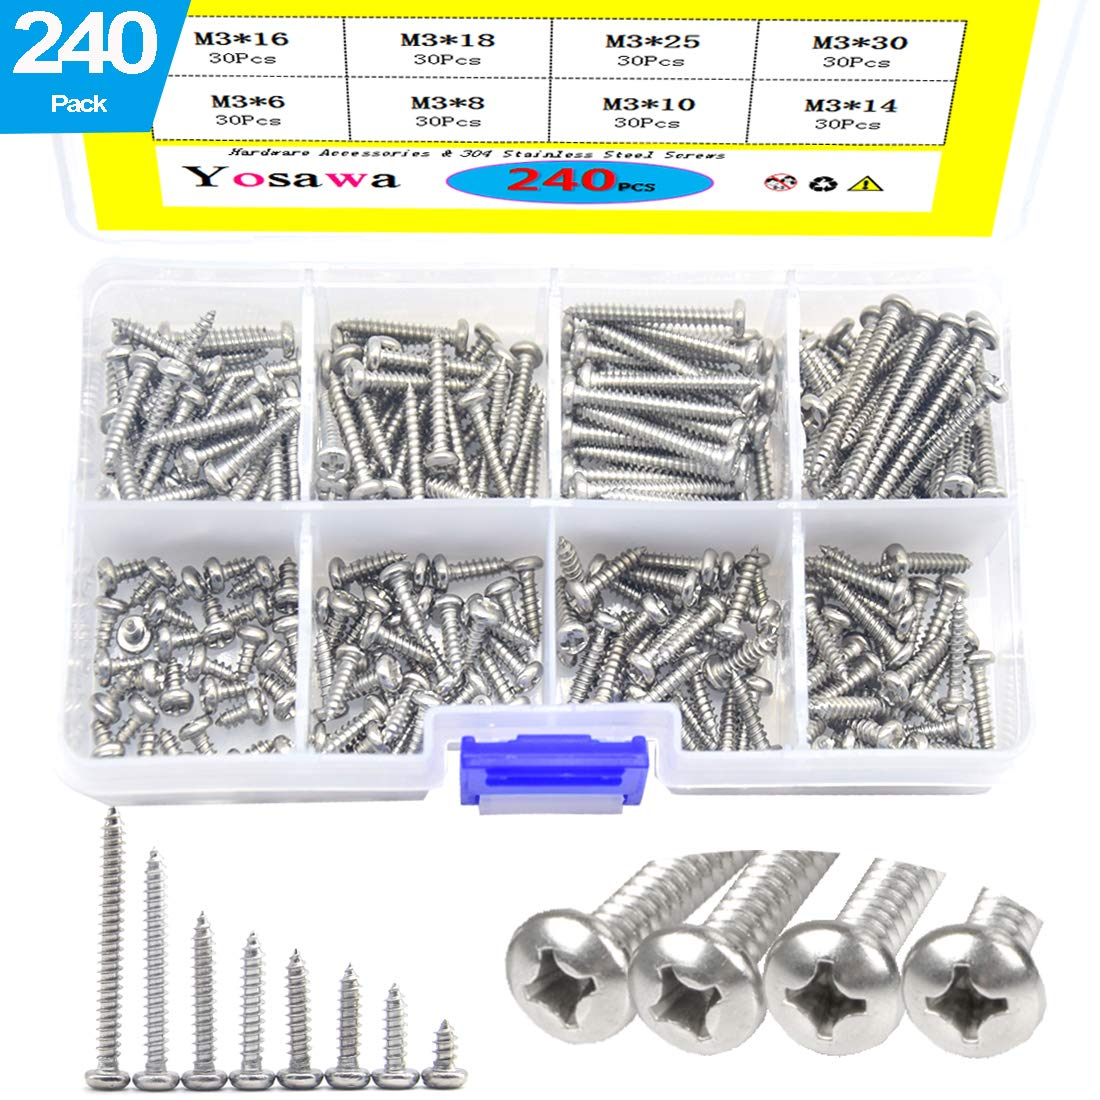 Phillips Drive #2 Drill Point 2 Length 82 Degree Flat Head 410 Stainless Steel Self-Drilling Screw Pack of 25 Plain Finish #8-18 Thread Size